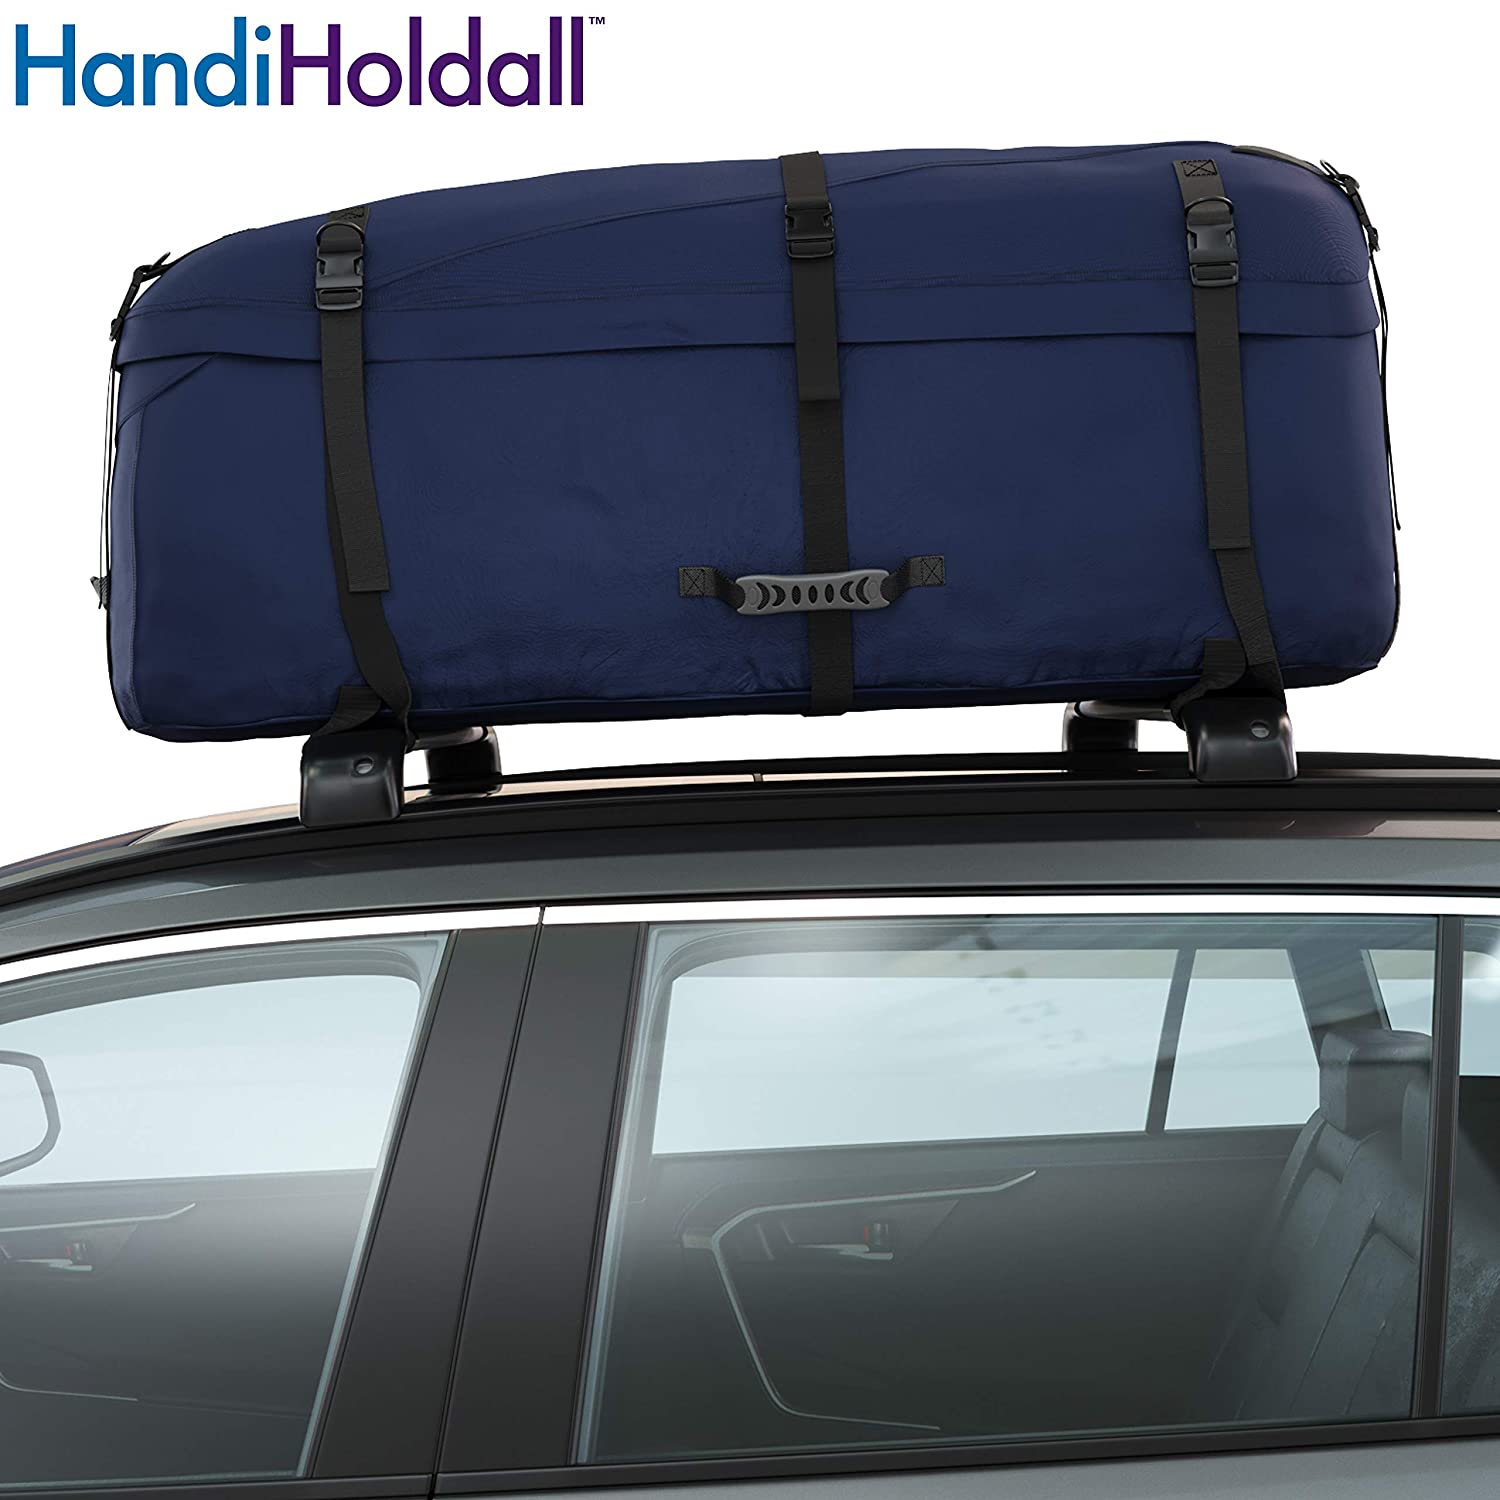 Navy Blue HandiHoldall Large Vehicle Roof Bag // Top Box 330L Weather Resistant Cargo Carrier